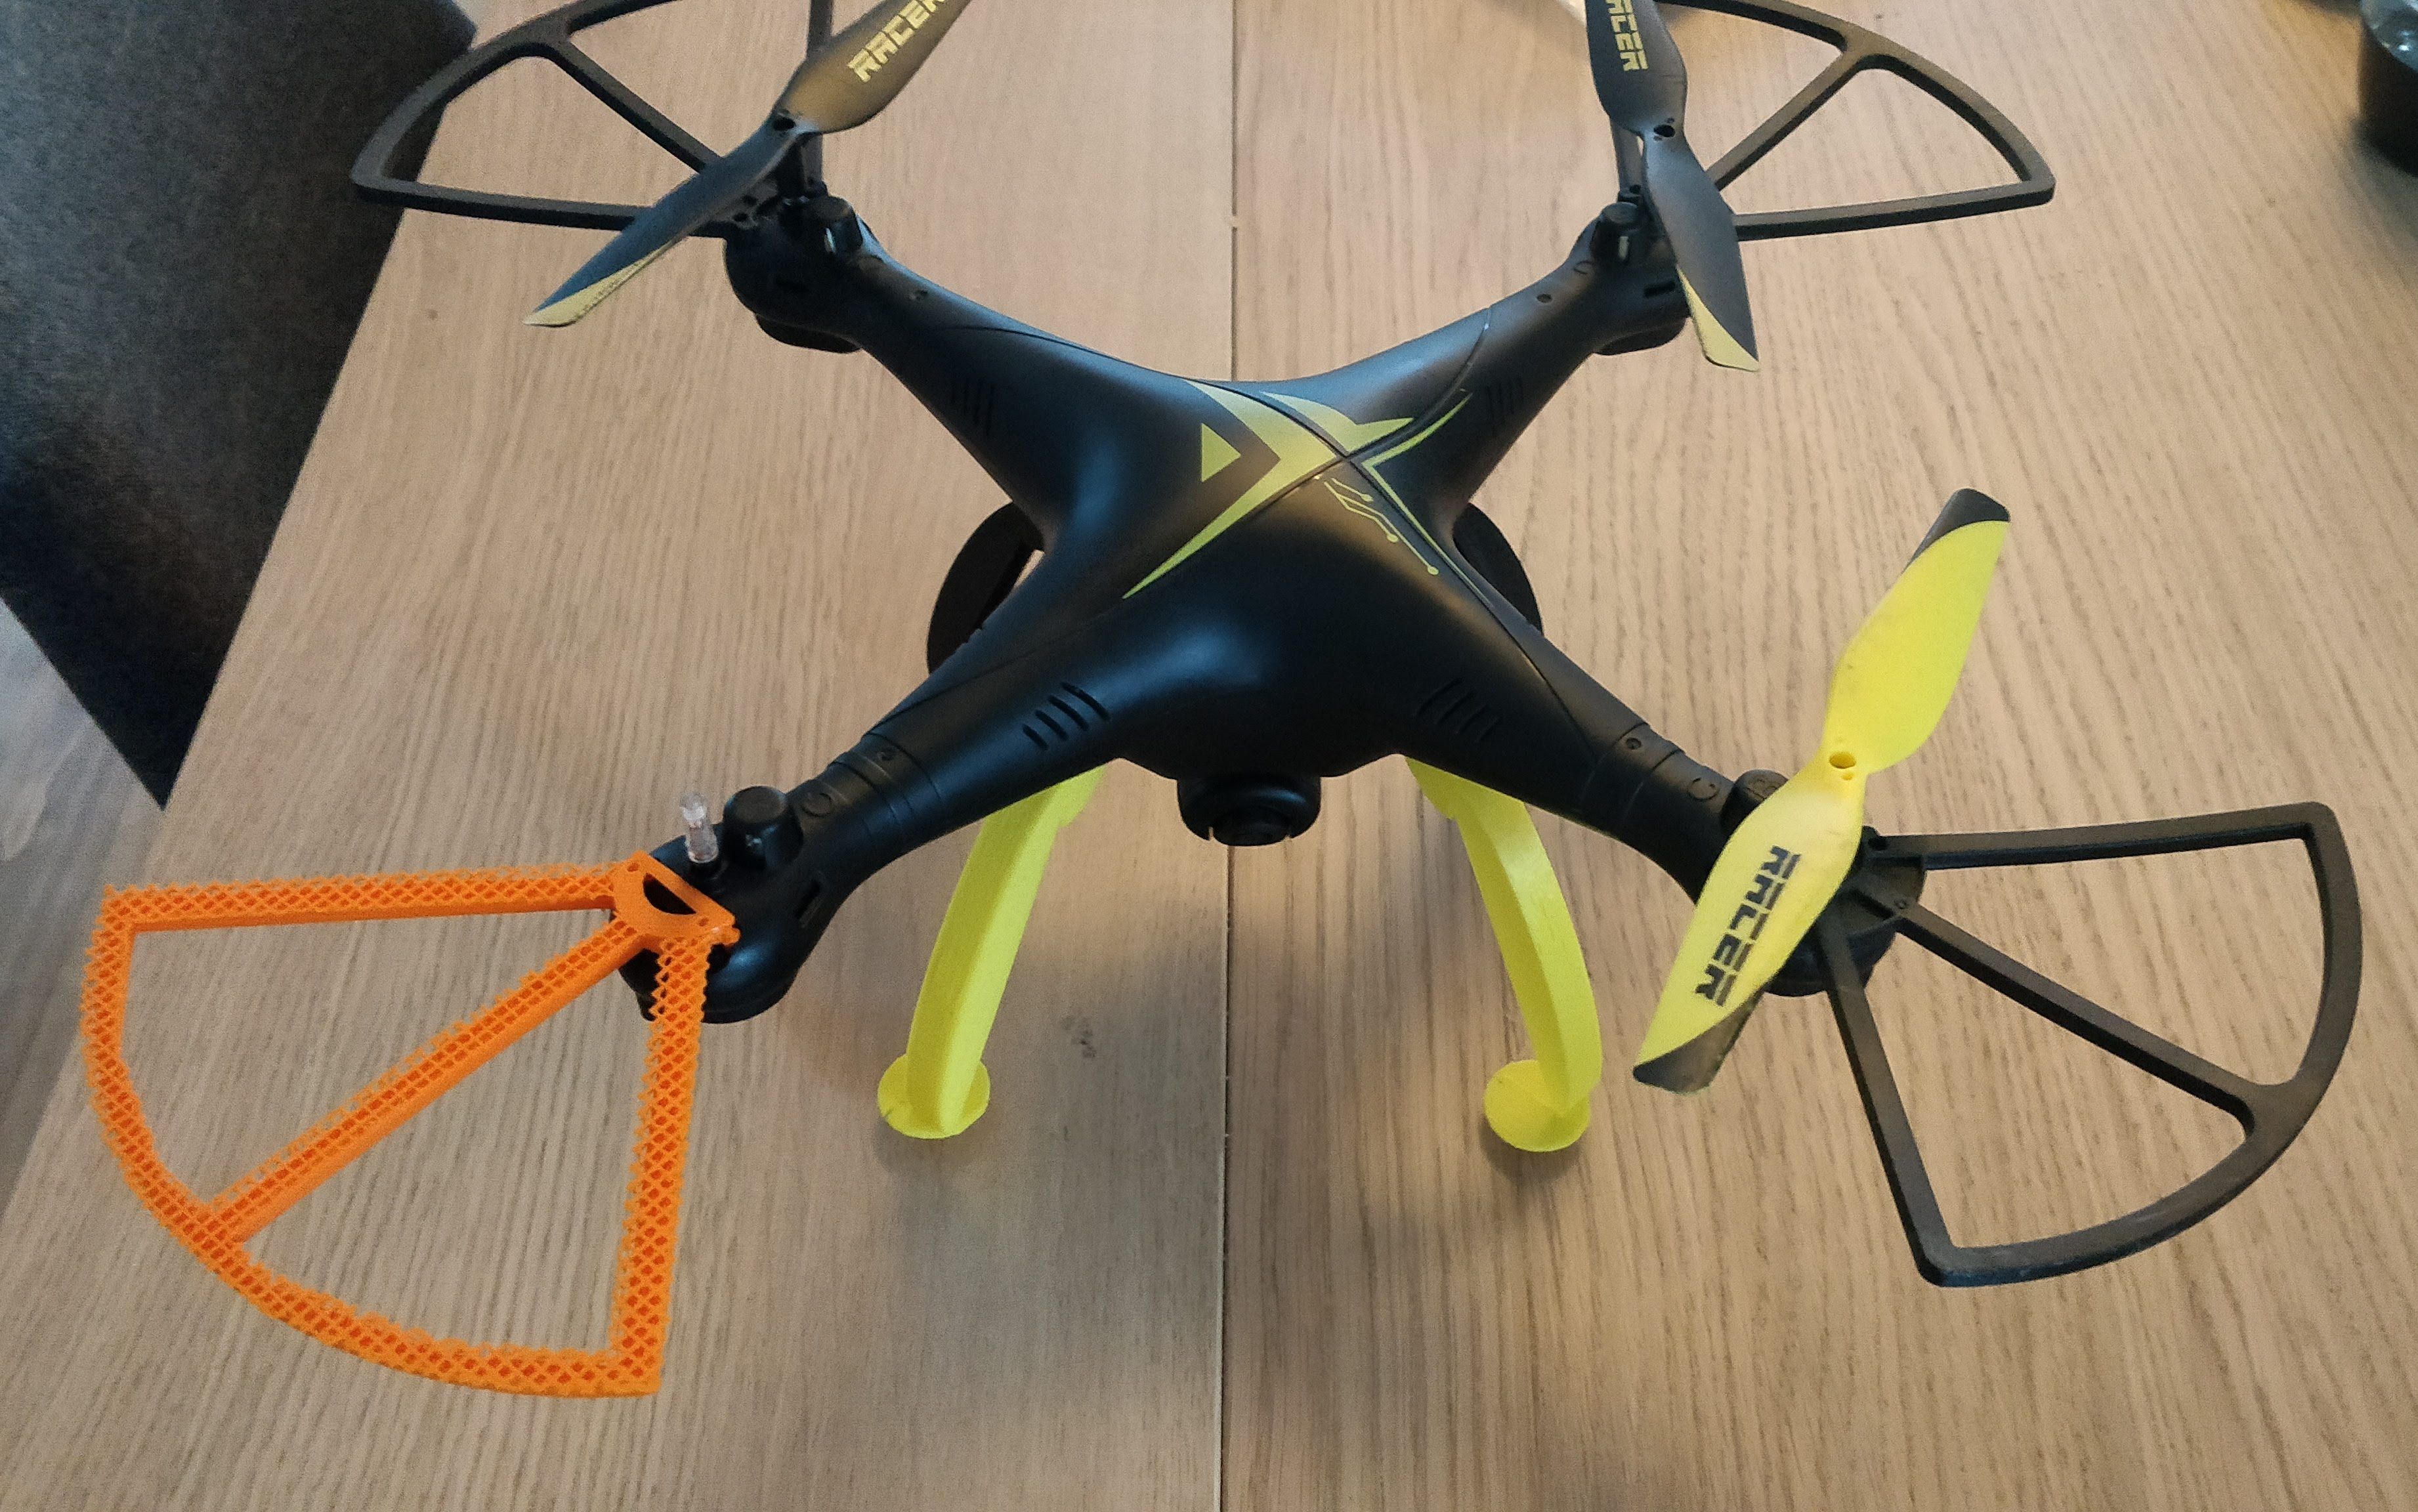 Happy3D fr - drone leg and propellers shield 3d printed